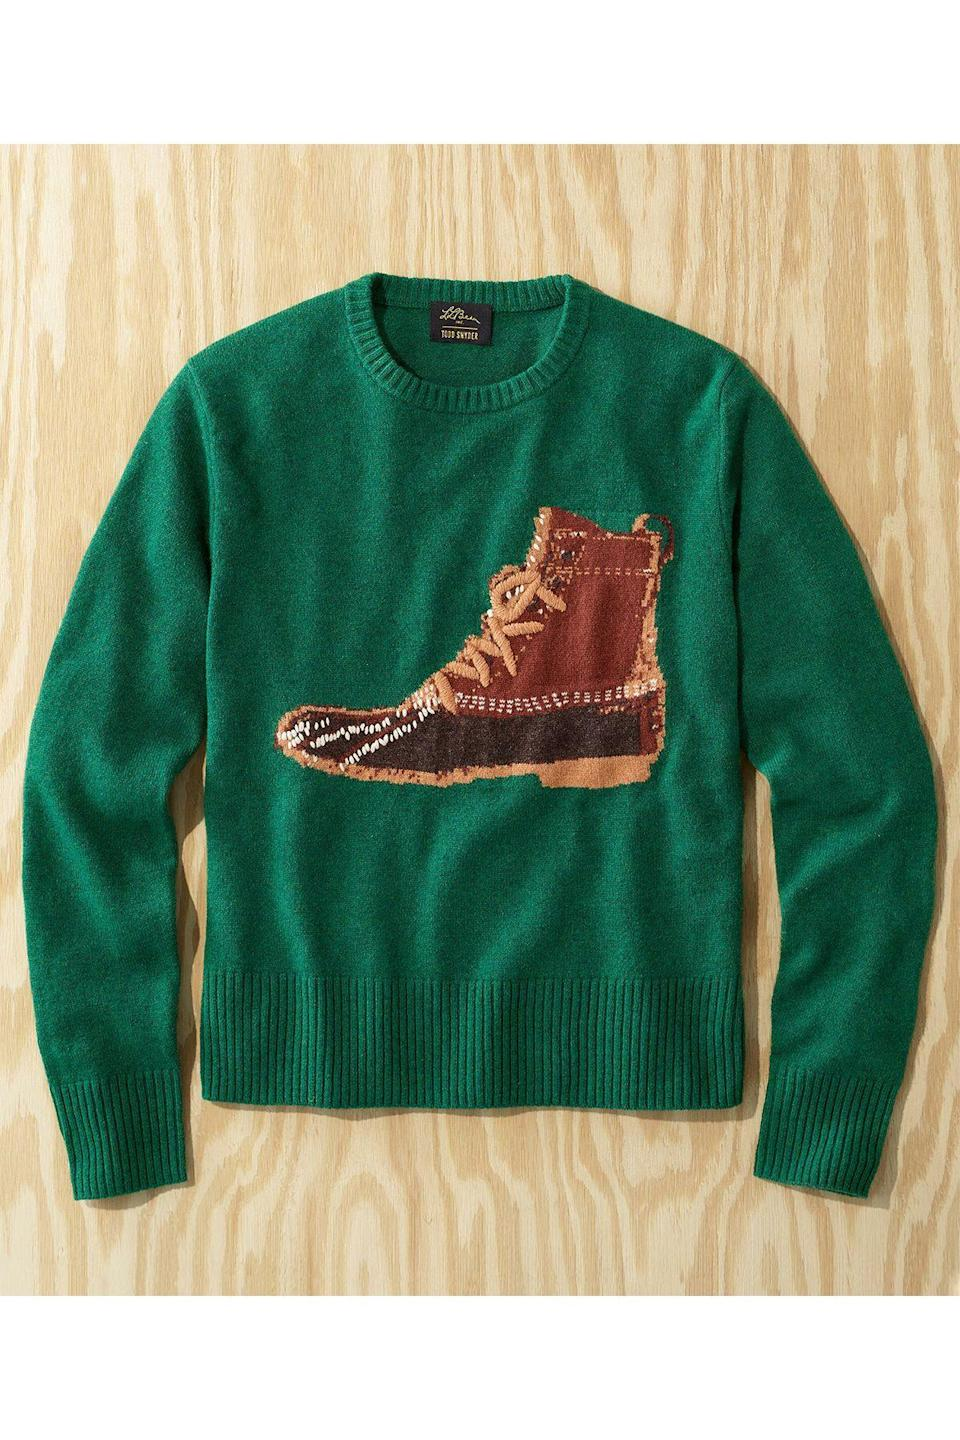 """<p><strong>L.L.Bean x Todd Snyder</strong></p><p>toddsnyder.com</p><p><strong>$199.00</strong></p><p><a href=""""https://go.redirectingat.com?id=74968X1596630&url=https%3A%2F%2Fwww.toddsnyder.com%2Fcollections%2Fl-l-bean-x-todd-snyder-one%2Fproducts%2Fllb-x-ts-heritage-crew-sweater-green-1&sref=https%3A%2F%2Fwww.townandcountrymag.com%2Fstyle%2Fmens-fashion%2Fg34524507%2Ftodd-snyder-and-ll-bean-collaboration%2F"""" rel=""""nofollow noopener"""" target=""""_blank"""" data-ylk=""""slk:Shop Now"""" class=""""link rapid-noclick-resp"""">Shop Now</a></p>"""